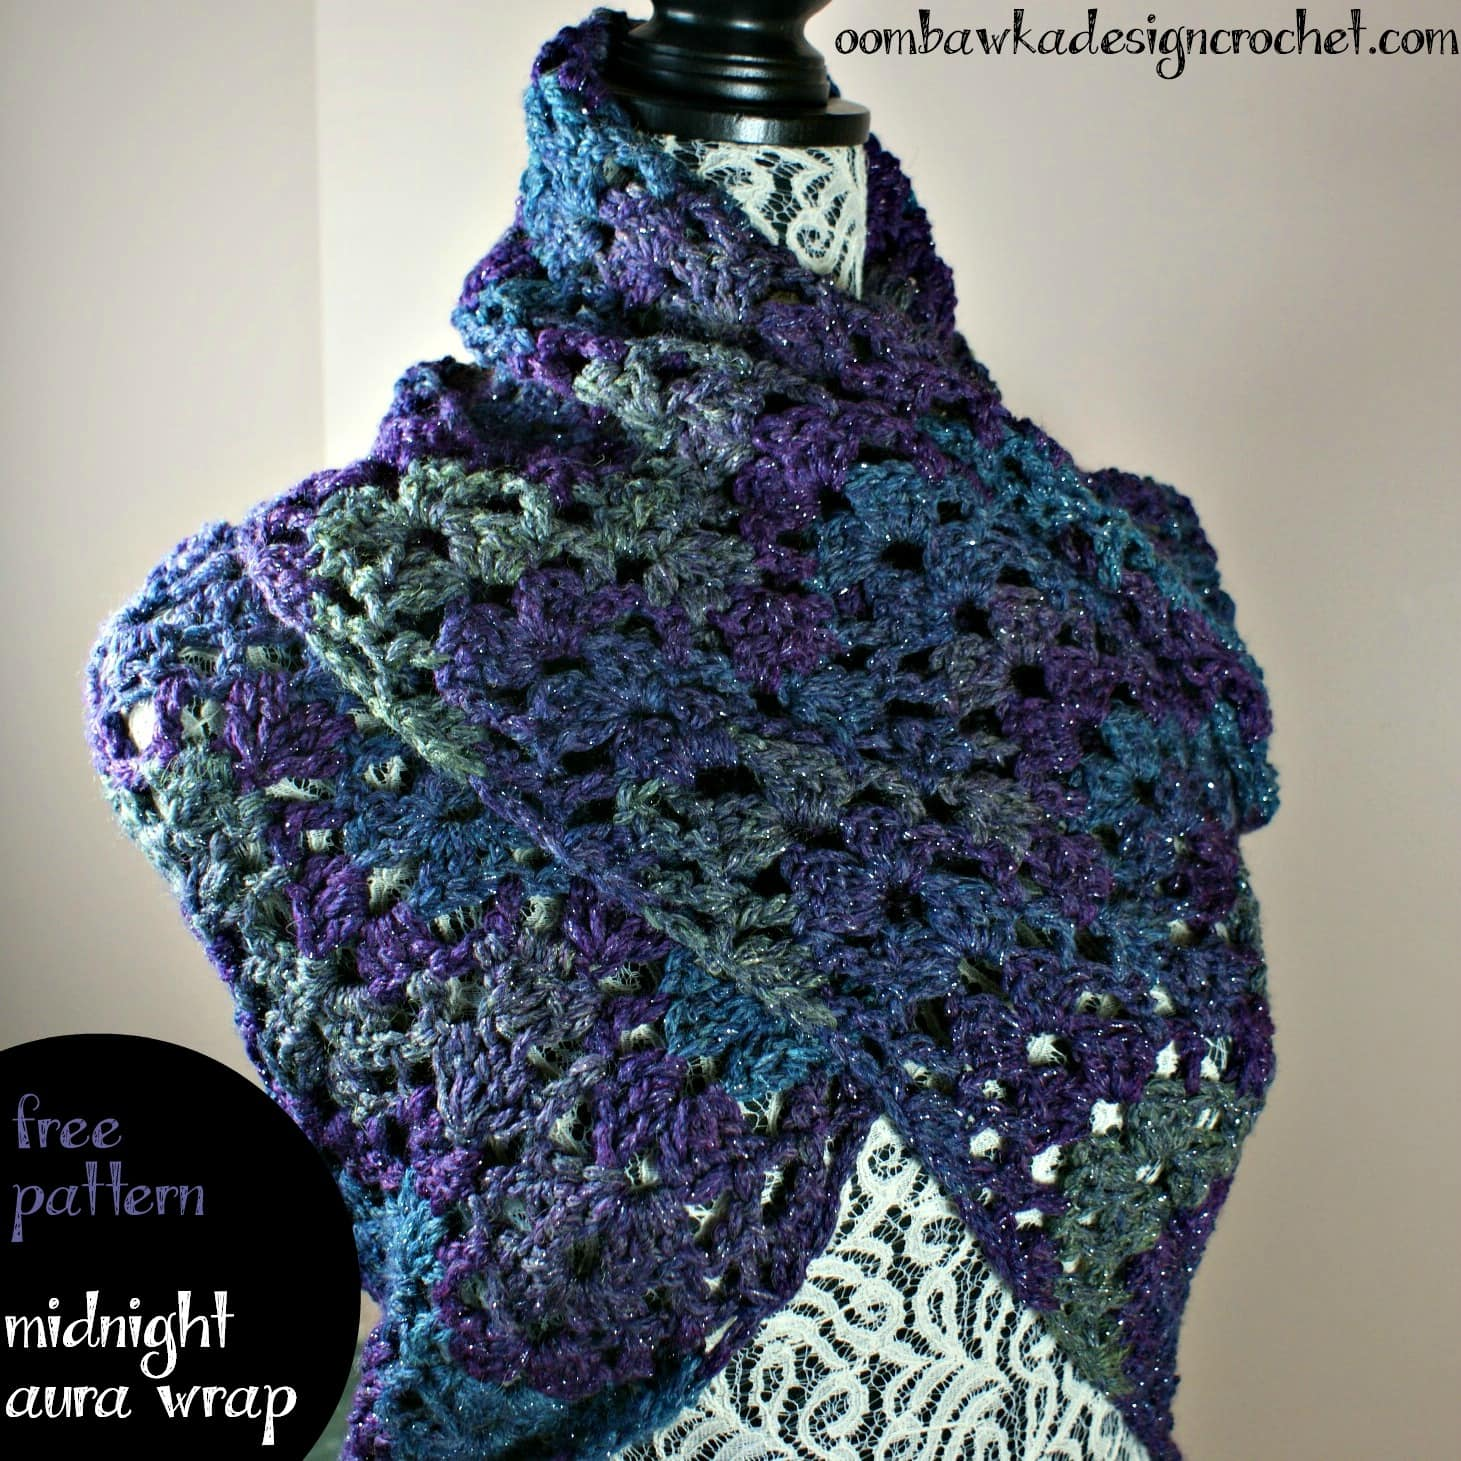 Midnight Aura Wrap Free Pattern from Oombawka Design